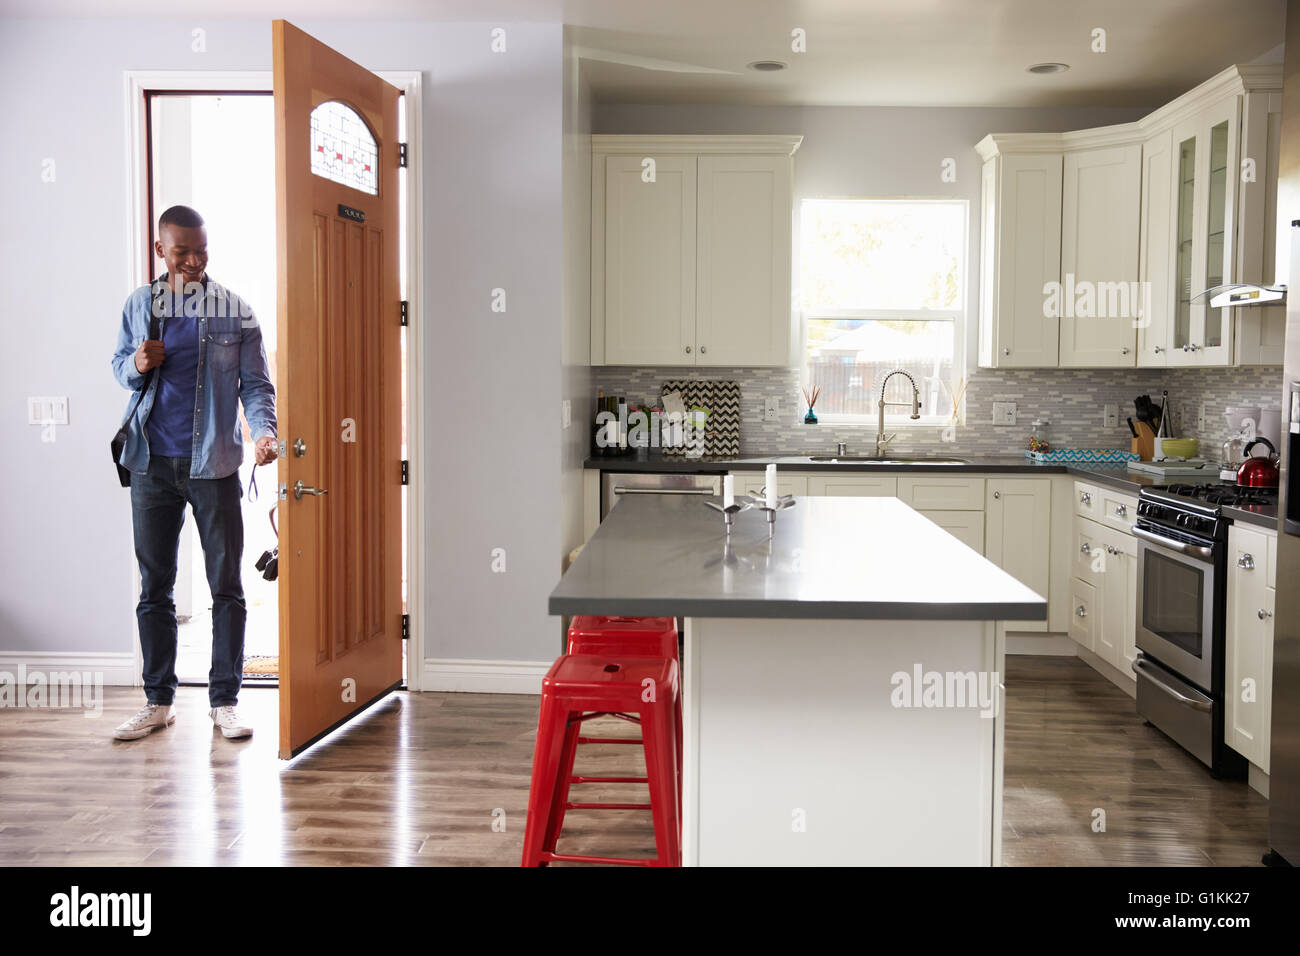 man coming home from work and opening door of apartment stock man coming home from work and opening door of apartment